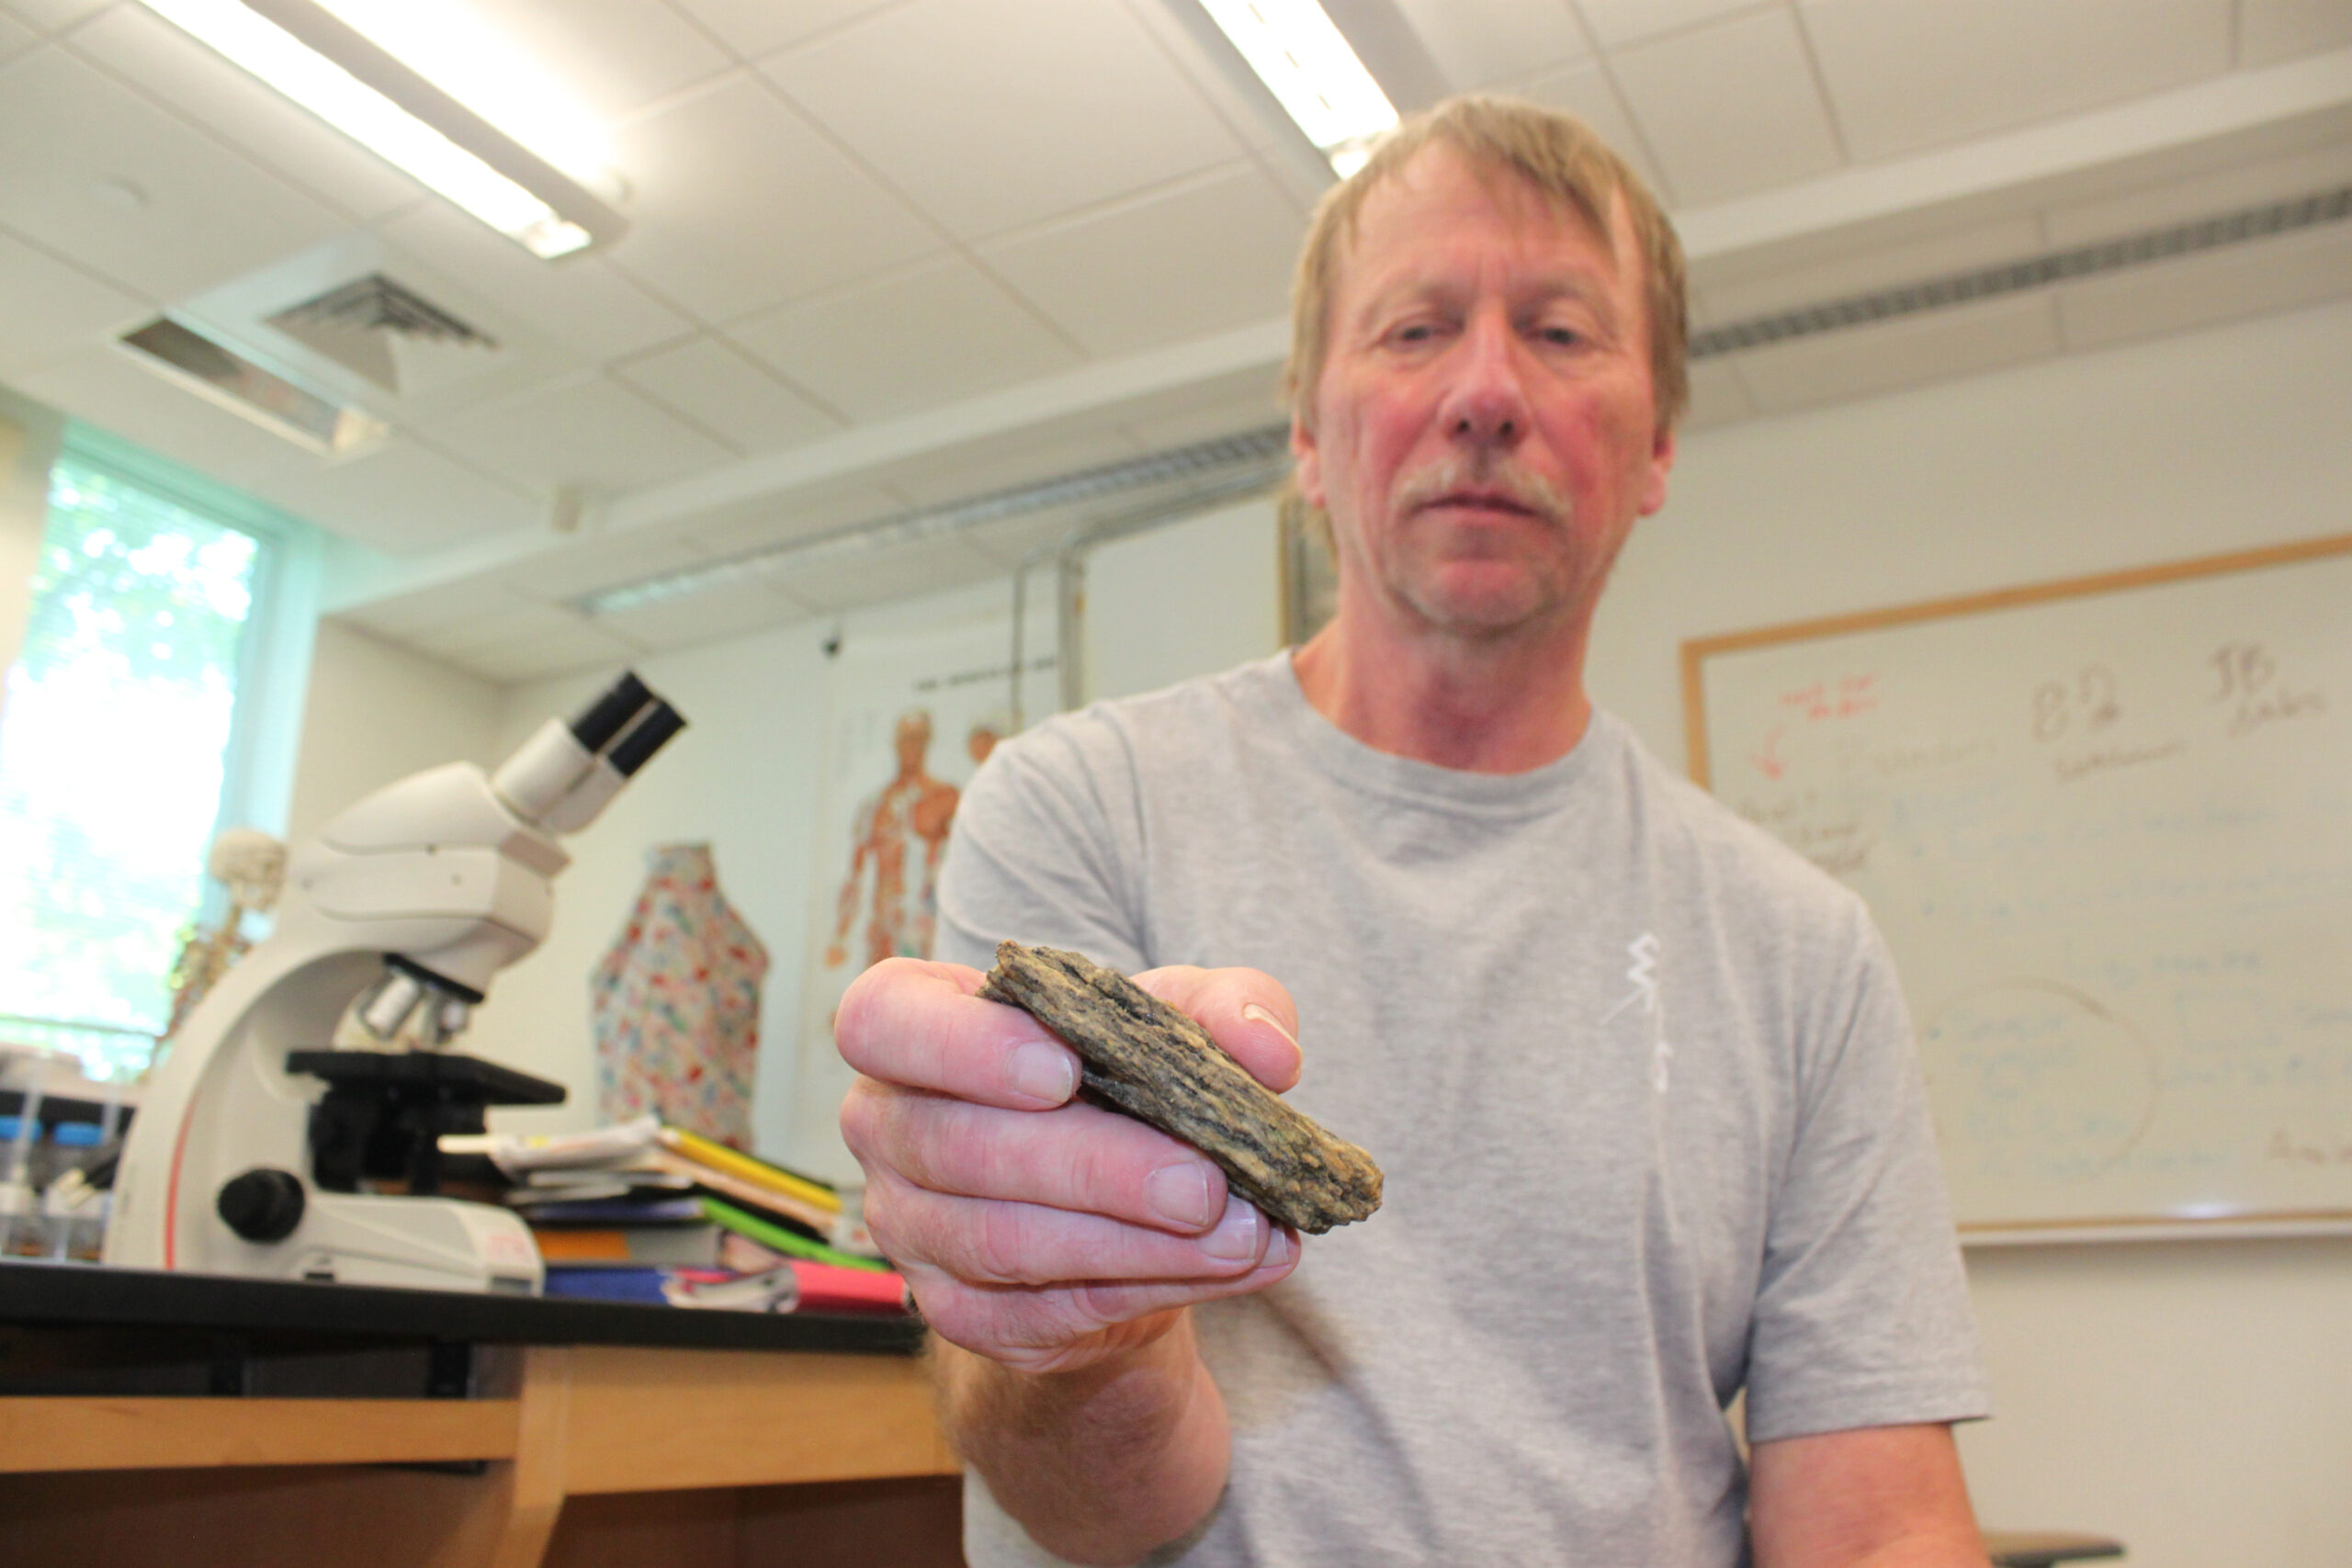 State dinosaur? State fossil? N.H. geology makes both unlikely